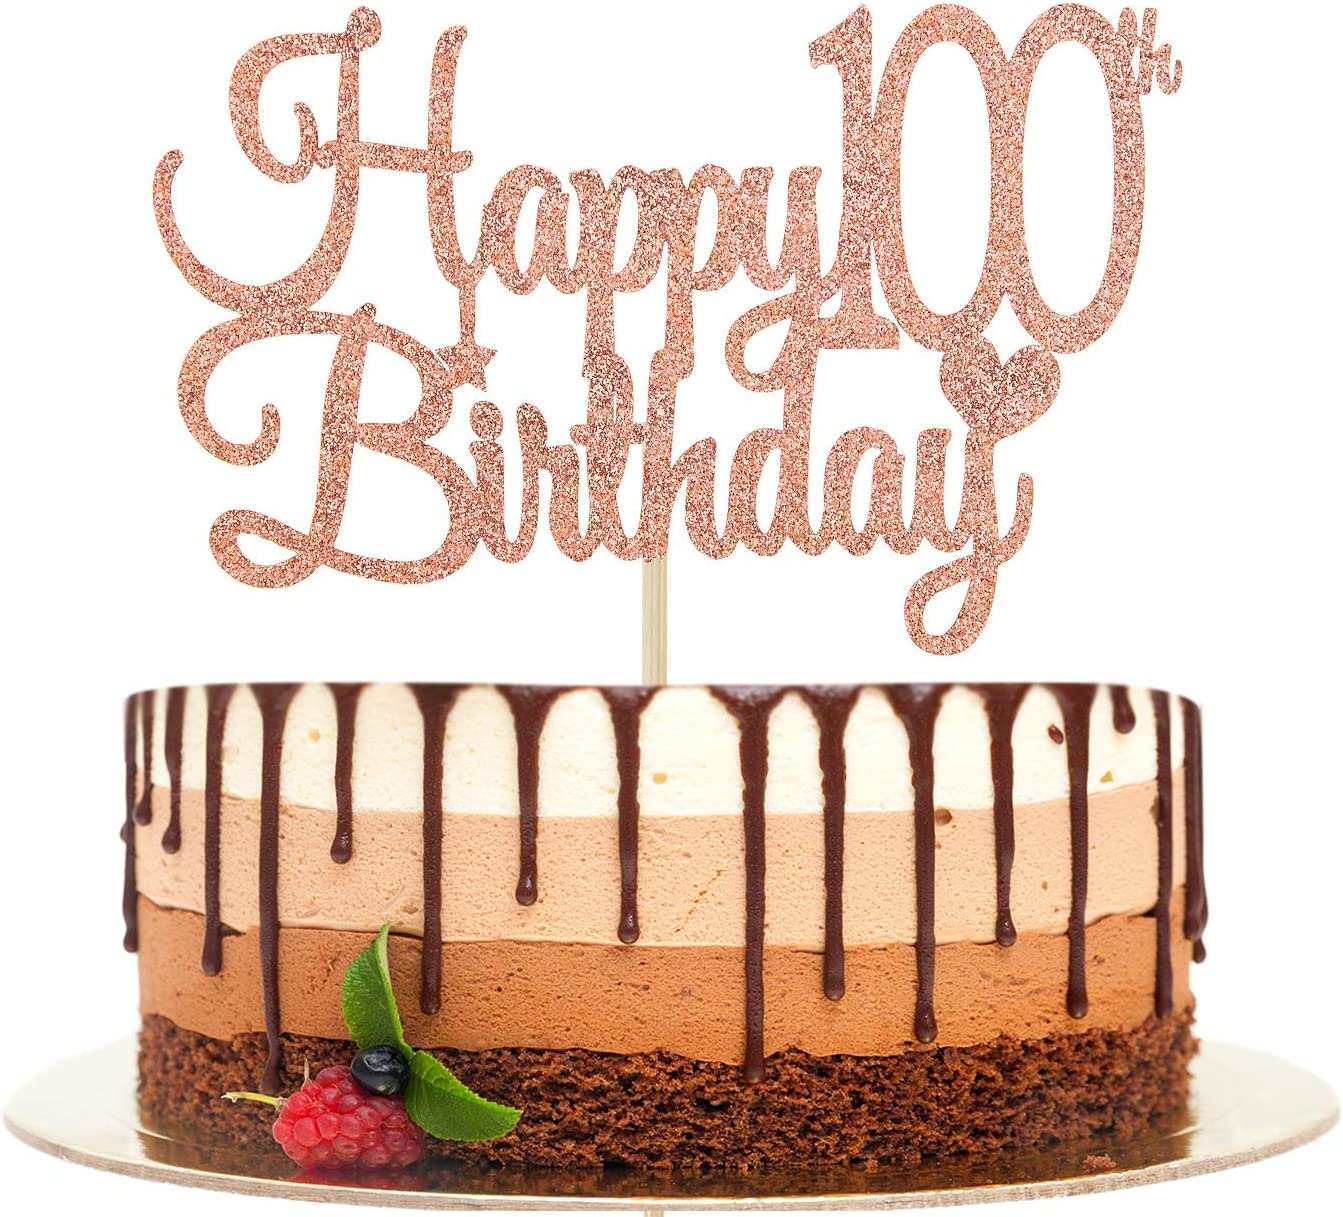 Happy 100th Birthday Cake Topper, 100 & Fabulous, Cheers to 100 Years, Hello 100,100th Birthday/Anniversary Party Decorations Rose Gold Glitter.